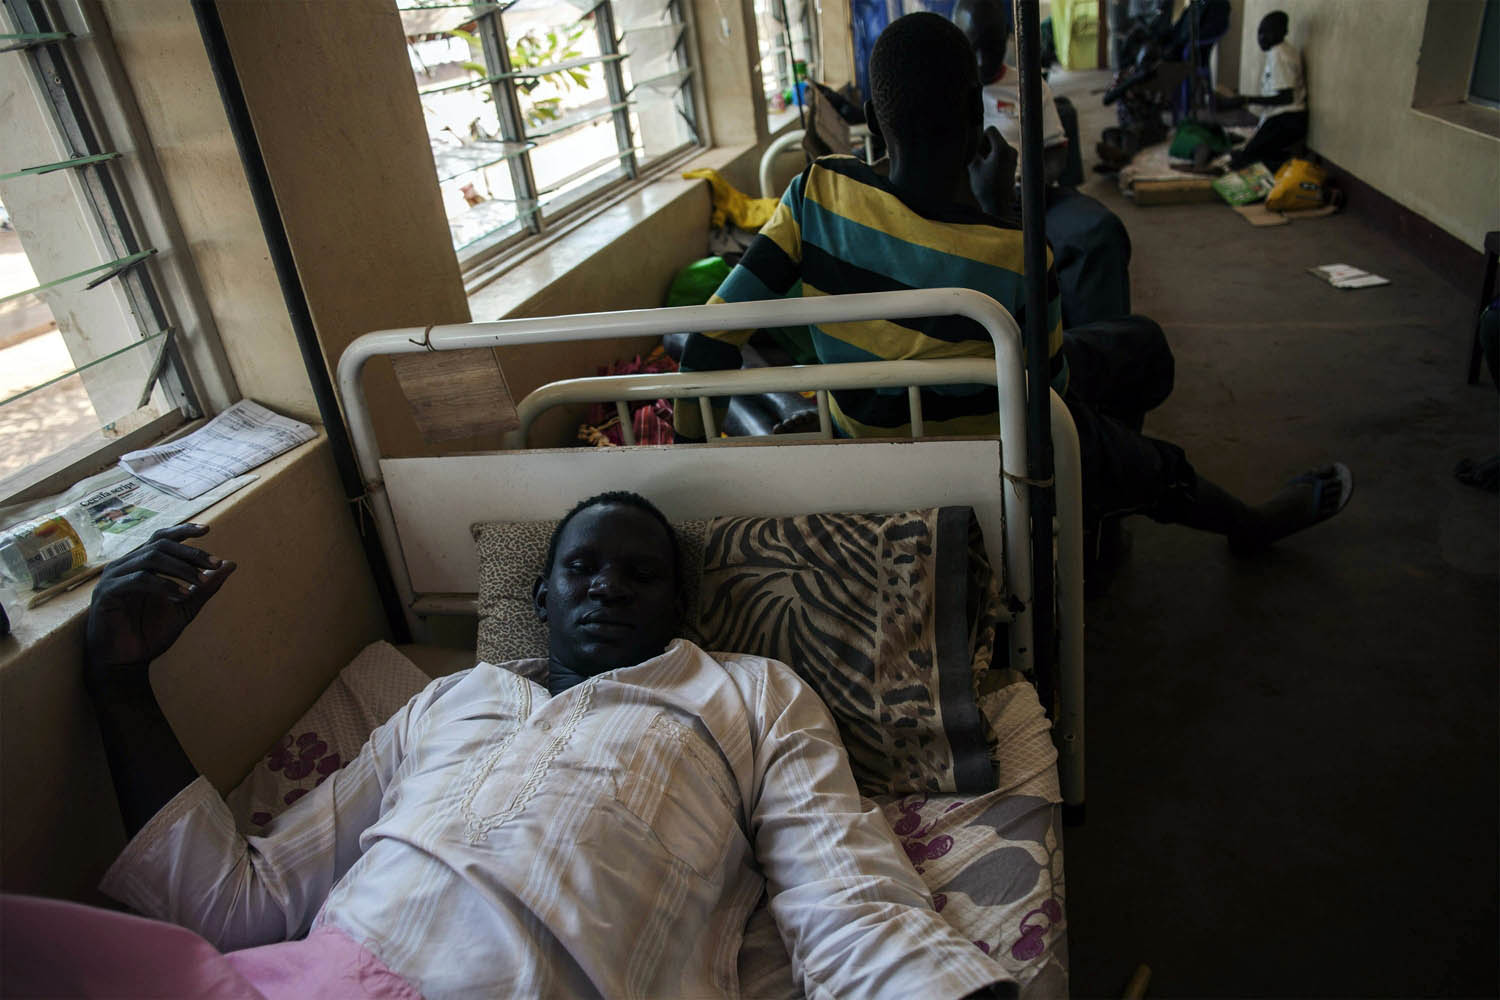 Feb. 11, 2014. A  soldier injured during fighting between Government forces and rebels is hospitalized at Yirol government hospital supported by Italian NGP CUAMM, in South Sudan.